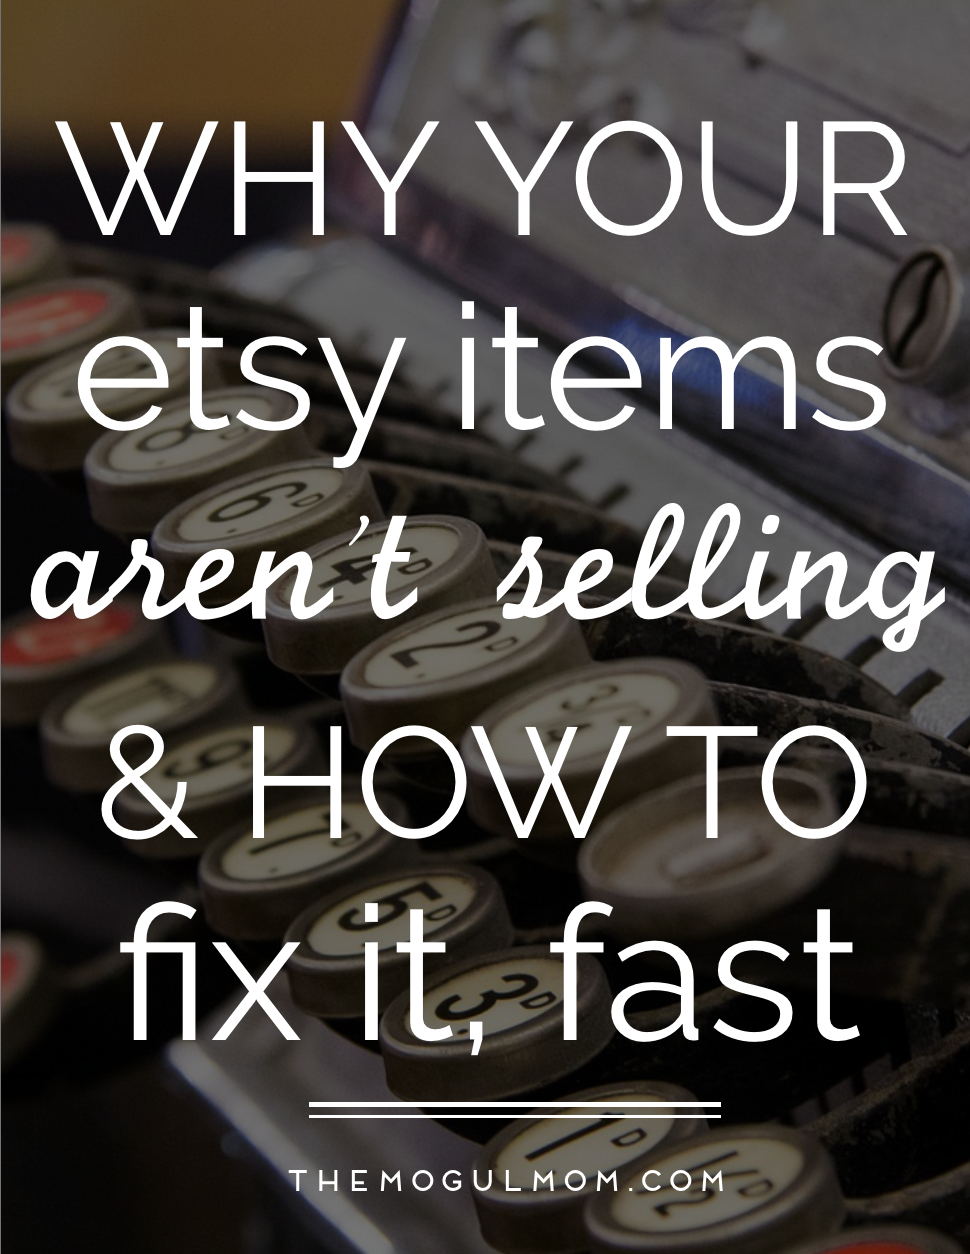 10 Reasons Your Etsy Items Aren't Selling